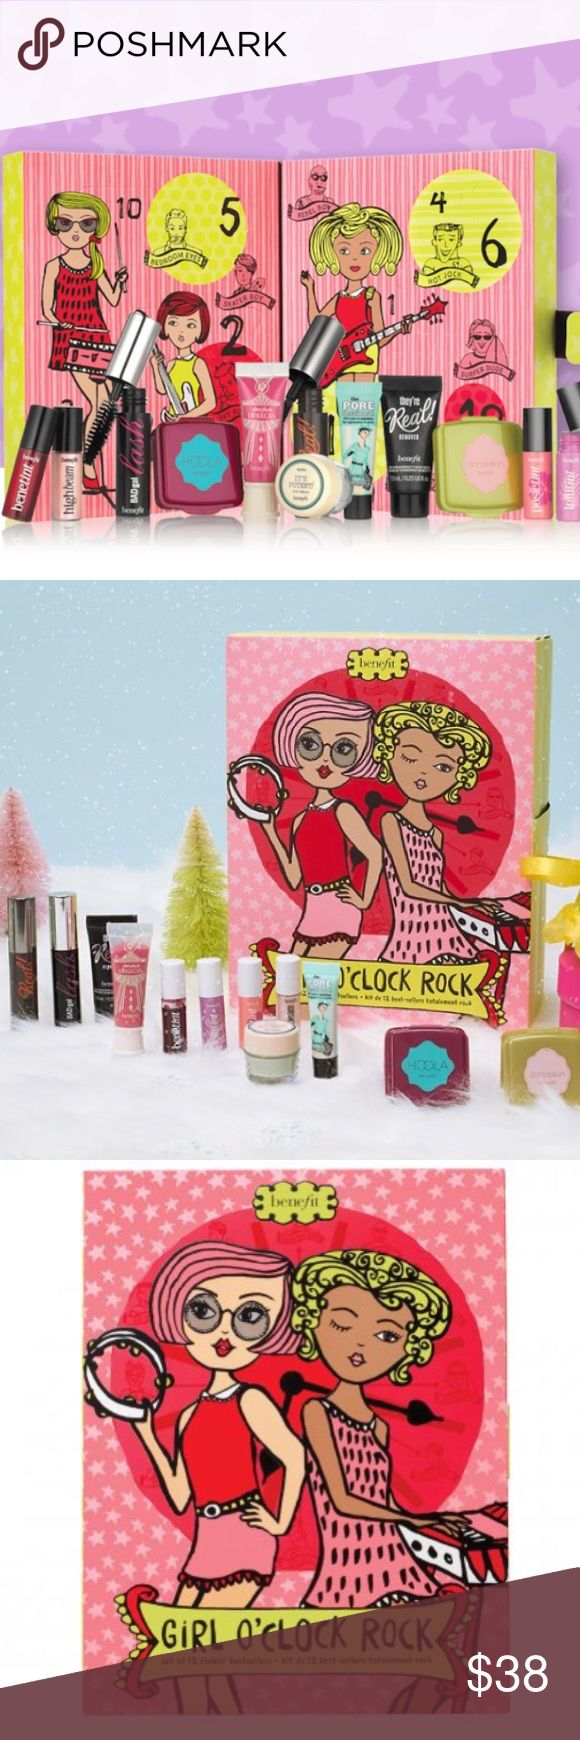 🎉Wknd Sale! NIB-Benefit Girl O'Clock Gift Set 🚫No trade 👍🏼Reasonable offers accepted   Each of the kit's doors open to reveal one of Benefit's bestsellers. See photo for full listing of products and their size. Valued at $86 Items are authentic, brand new and sealed in box. Photos of opened box w/ items are stock images to show products. Sephora Makeup